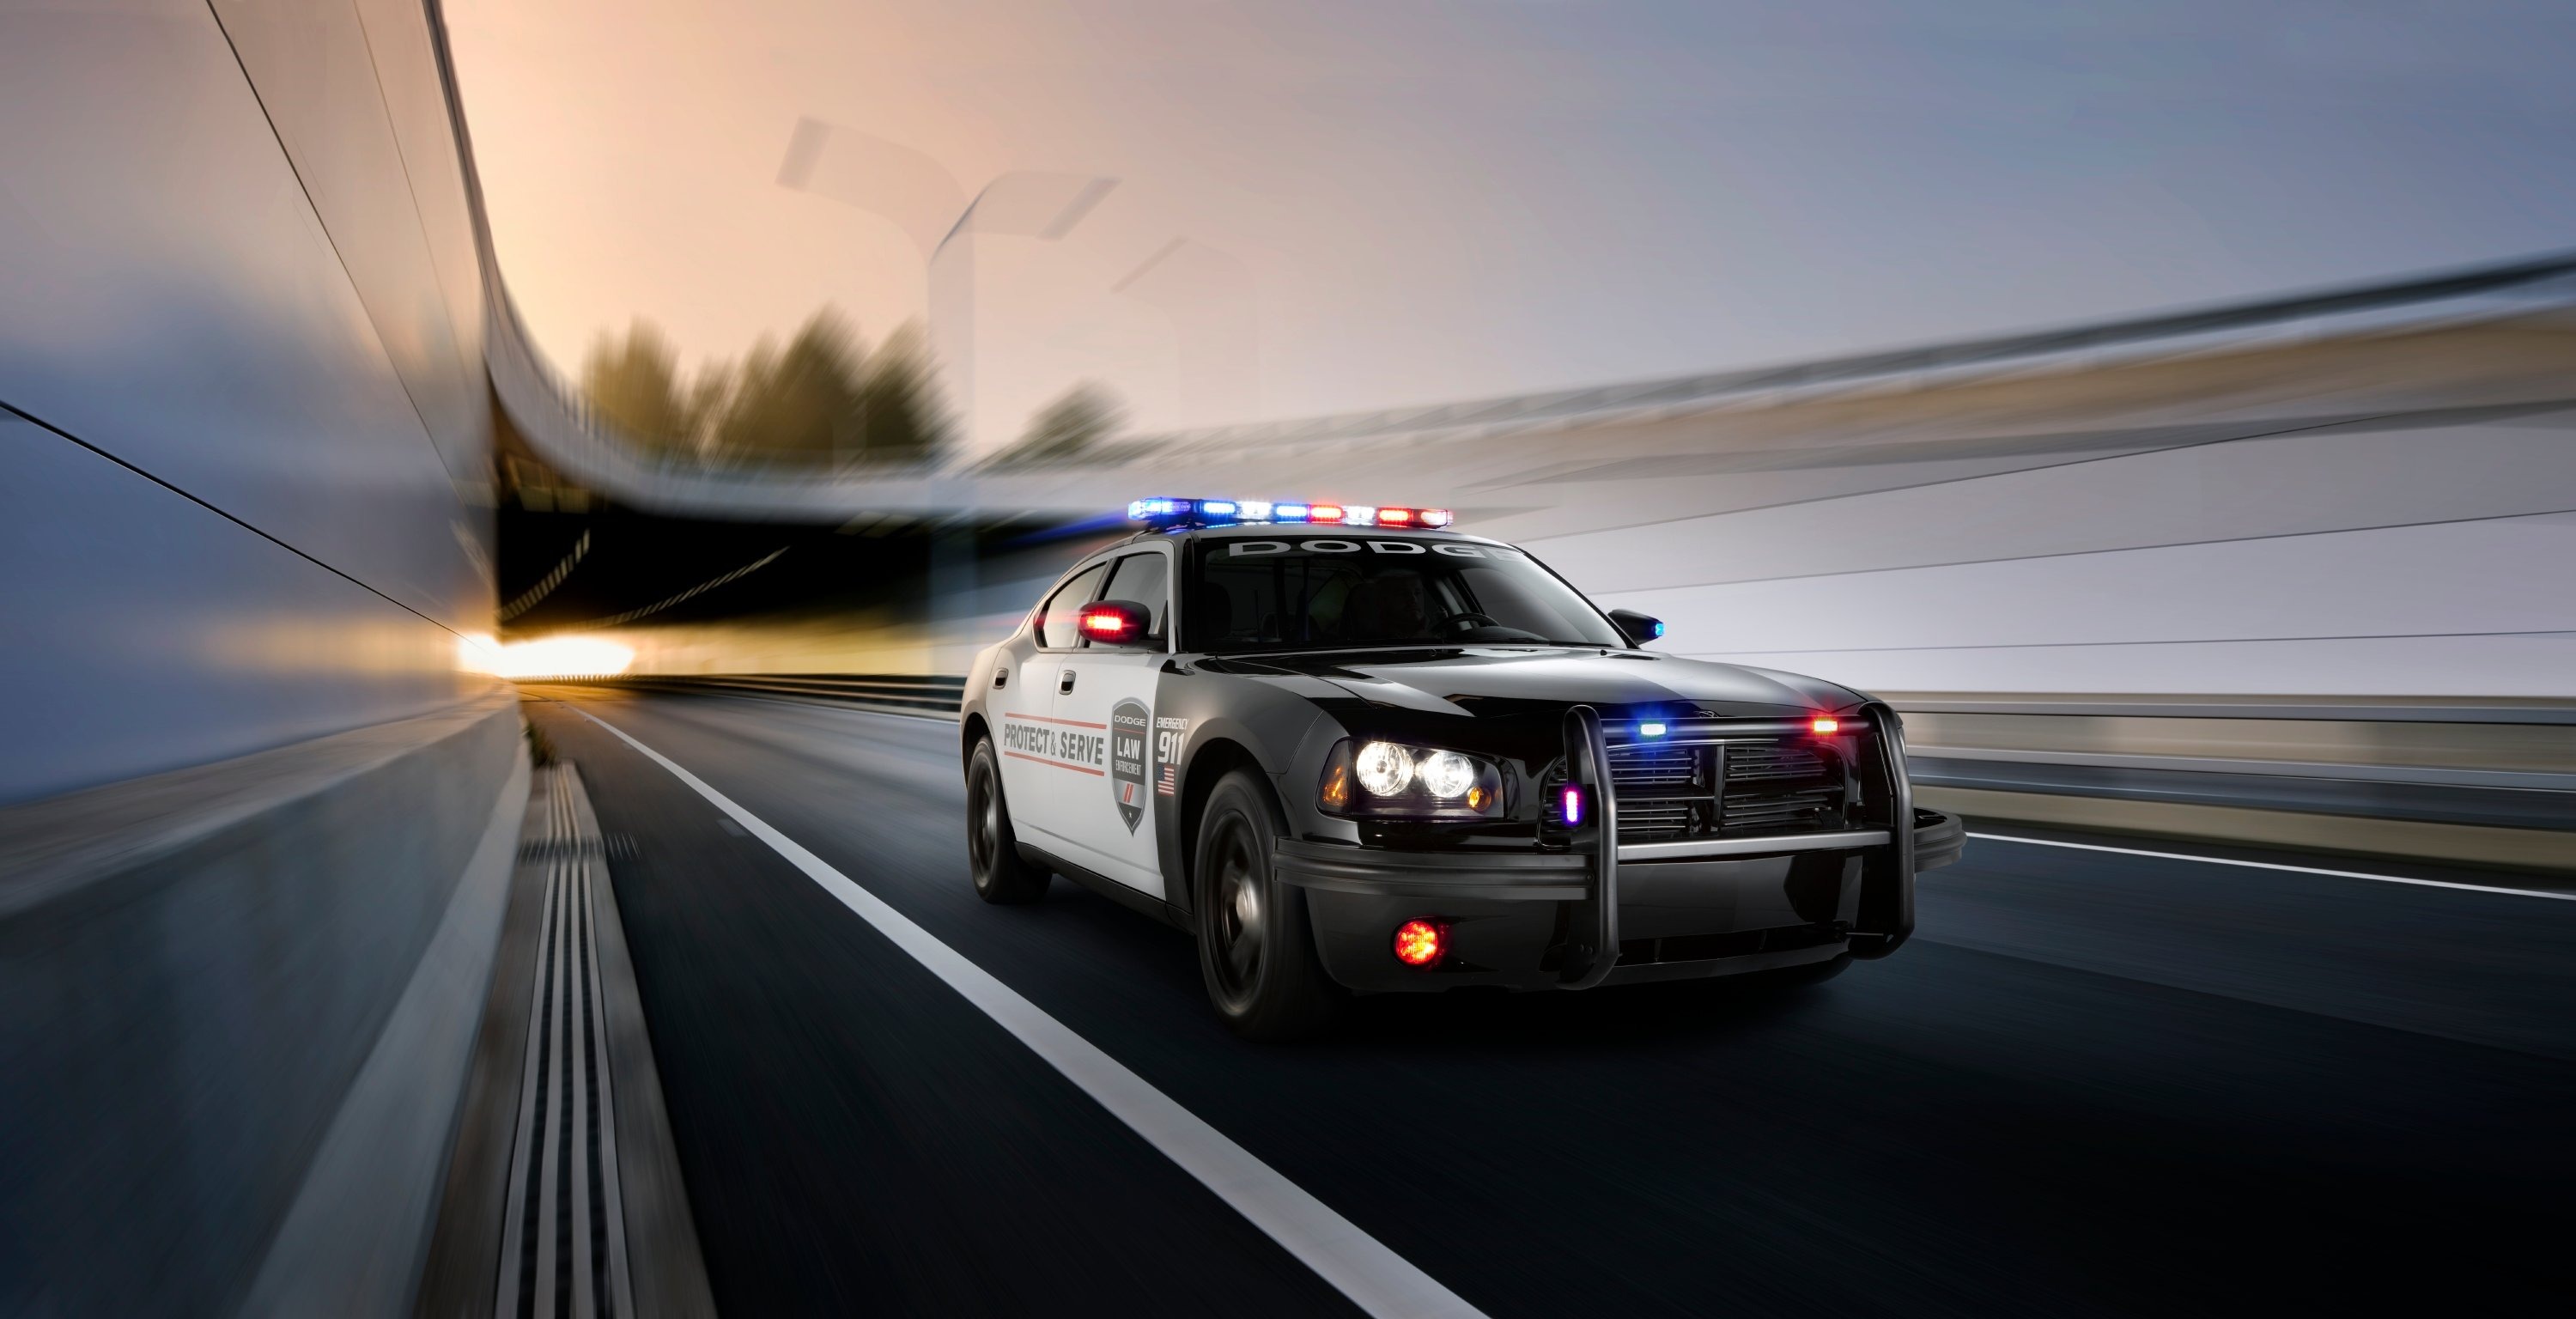 police Computer Wallpapers Desktop Backgrounds 3000x1536 ID 3000x1536